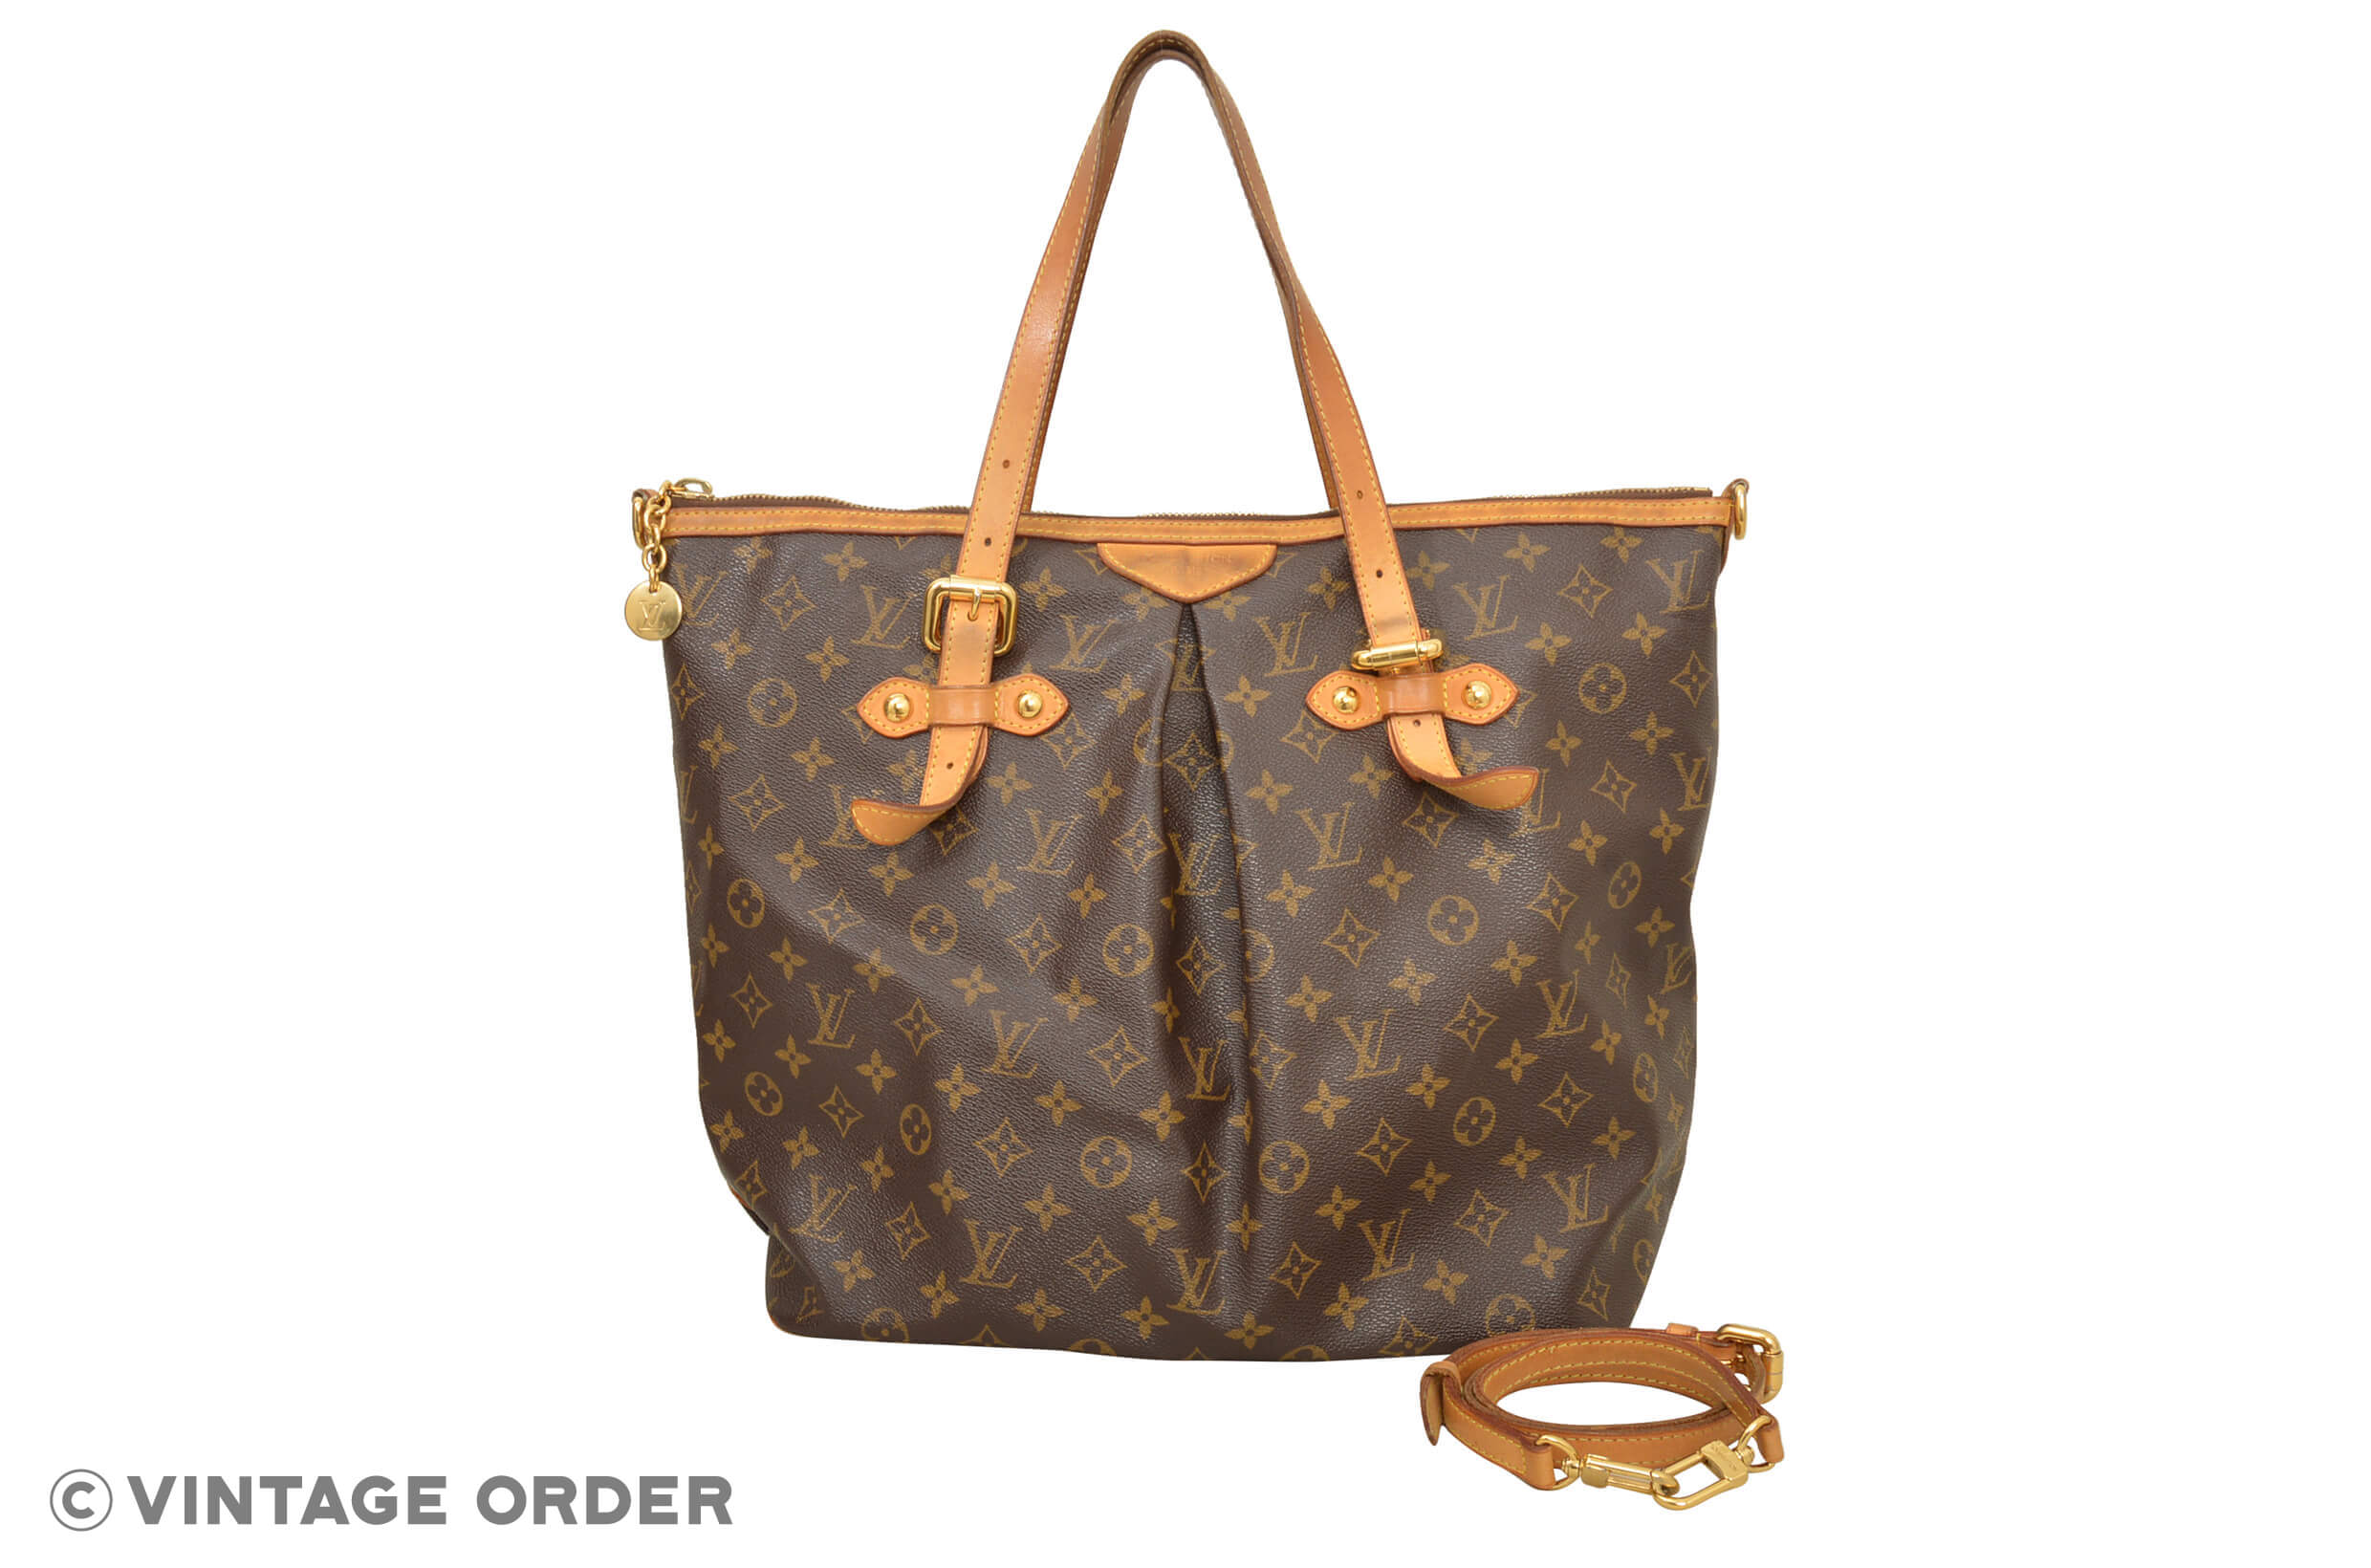 Louis Vuitton Tivoli Vs Palermo Louis Vuitton Monogram Palermo Gm Bolso De Hombro M40146 E00192 Ebay